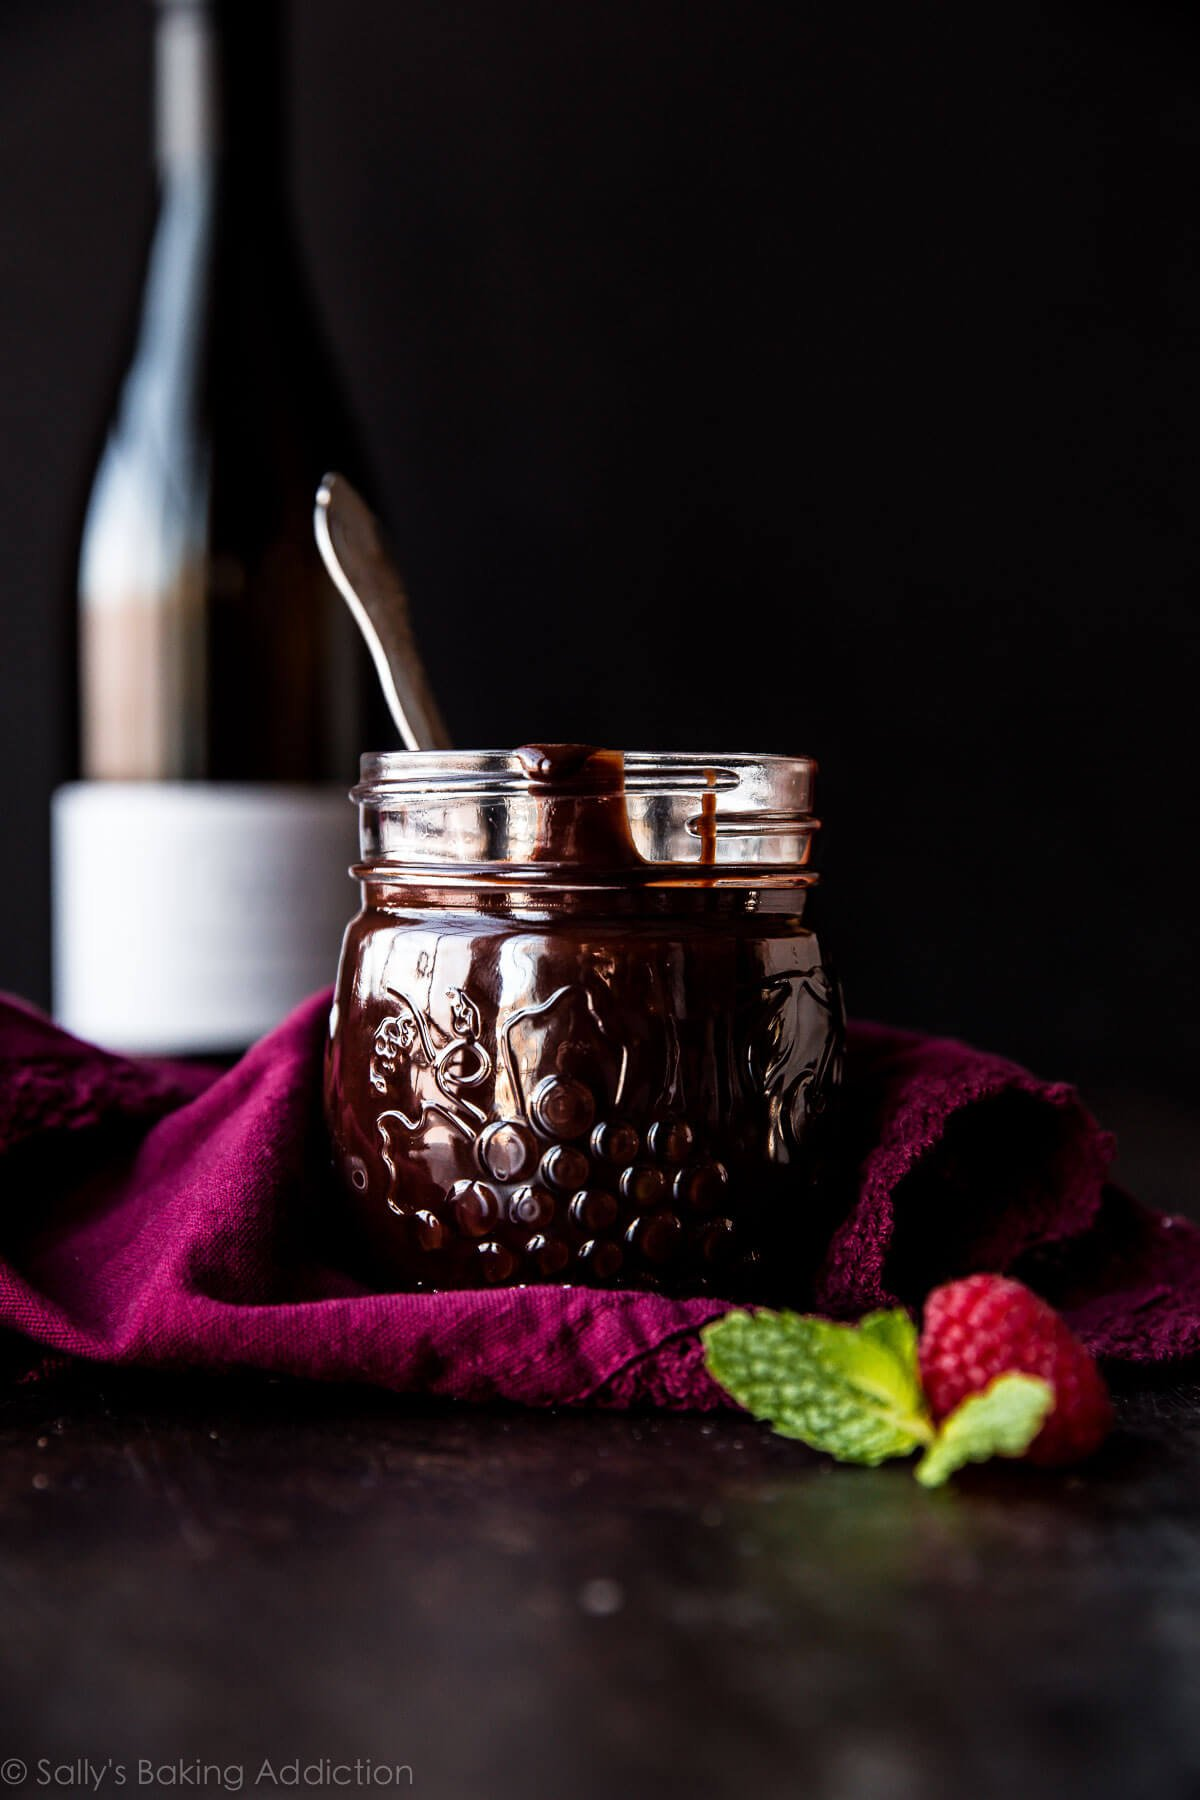 Silky, thick, rich, and smooth chocolate sauce made with red wine! This chocolate ganache is delicious on ice cream, cakes, cupcakes, pound cakes, and more! Recipe on sallysbakingaddiction.com